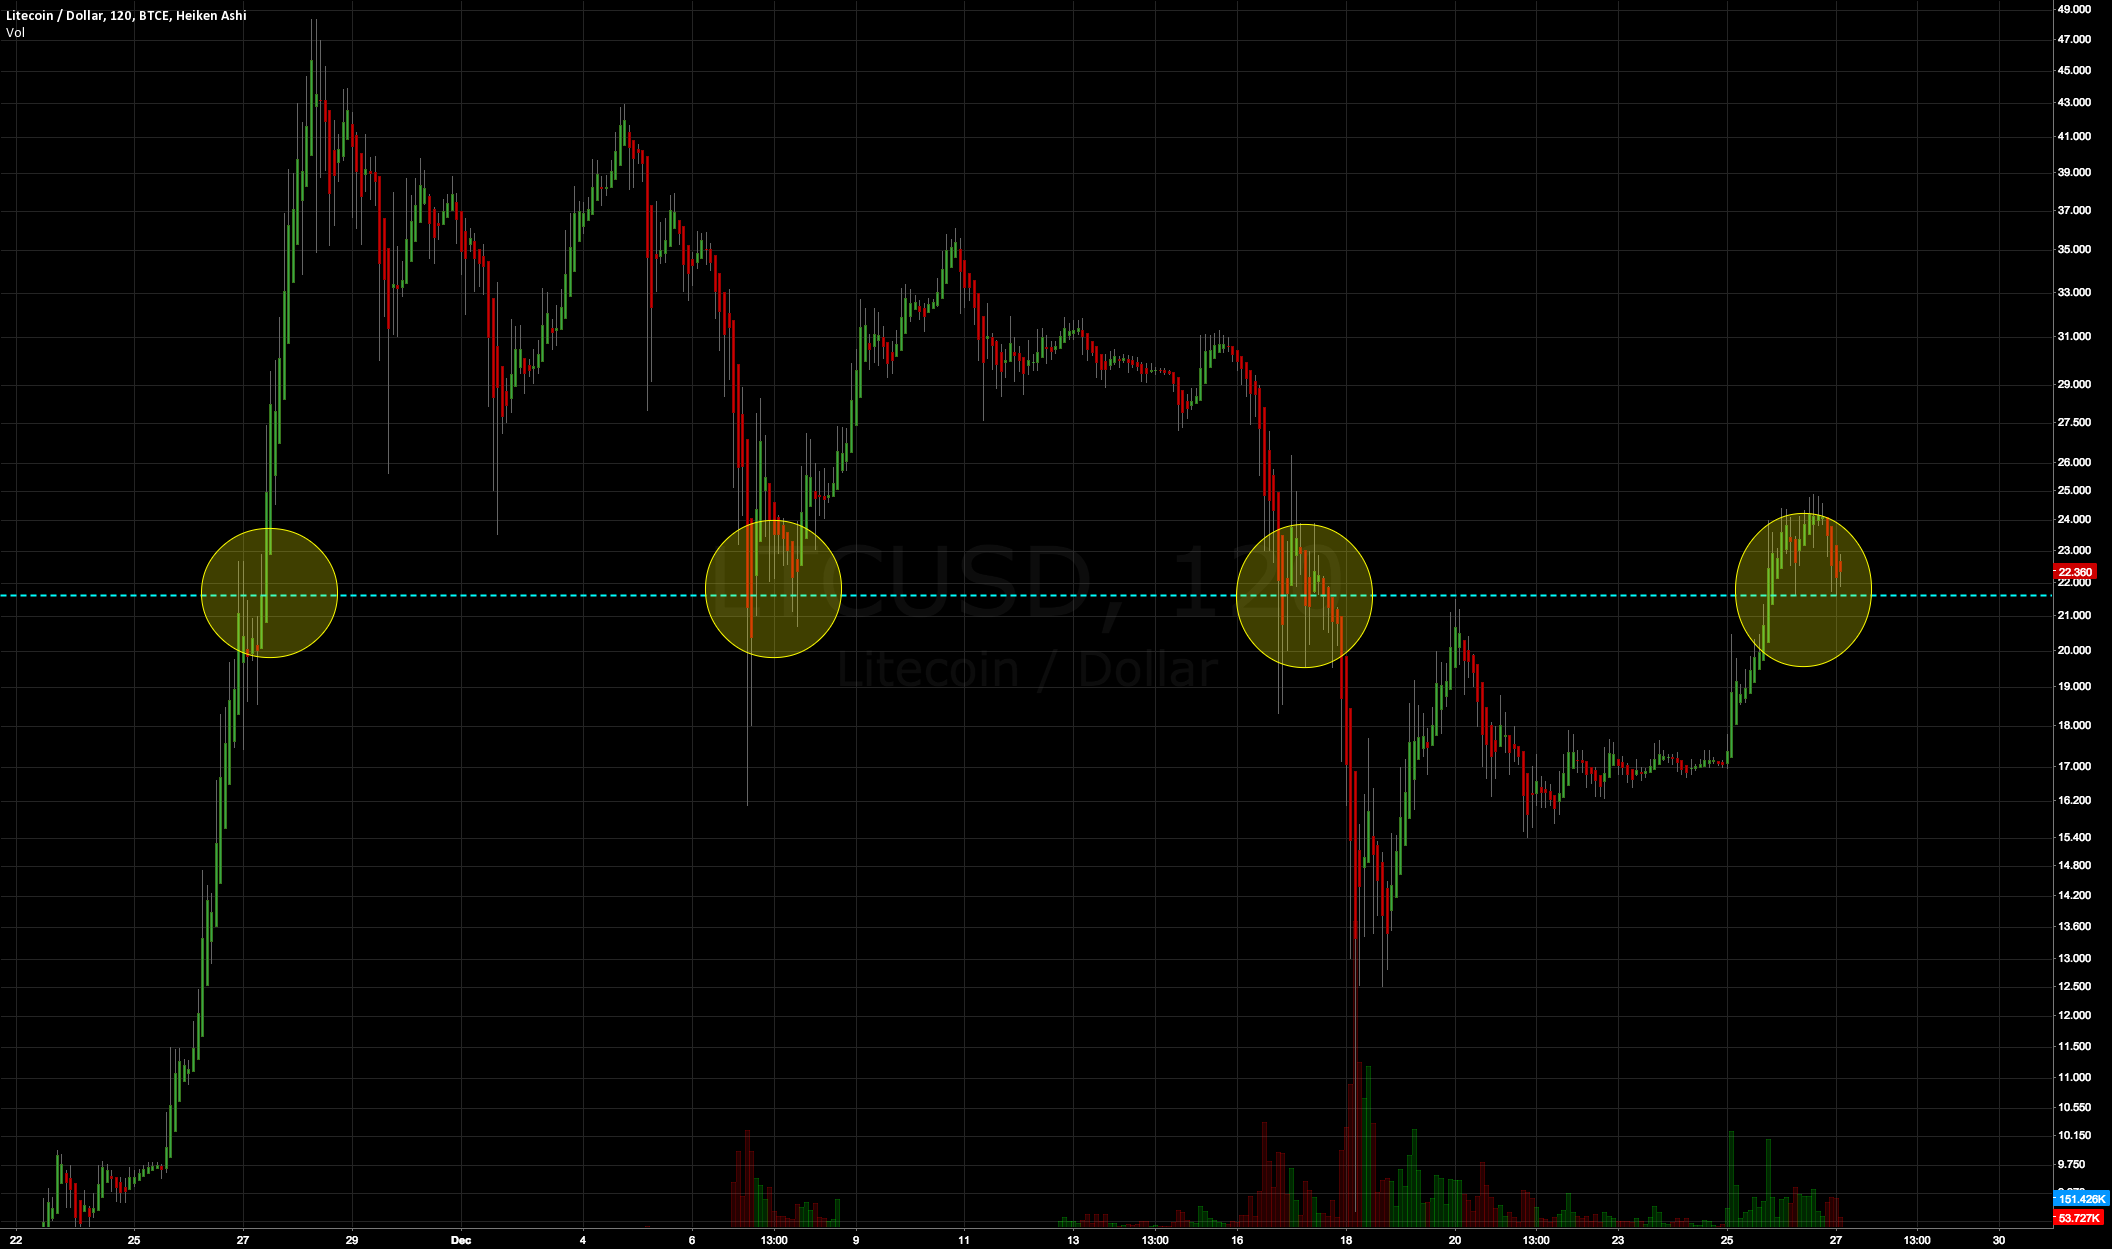 Litecoin support @21.6 throughout the bubble, into next rally